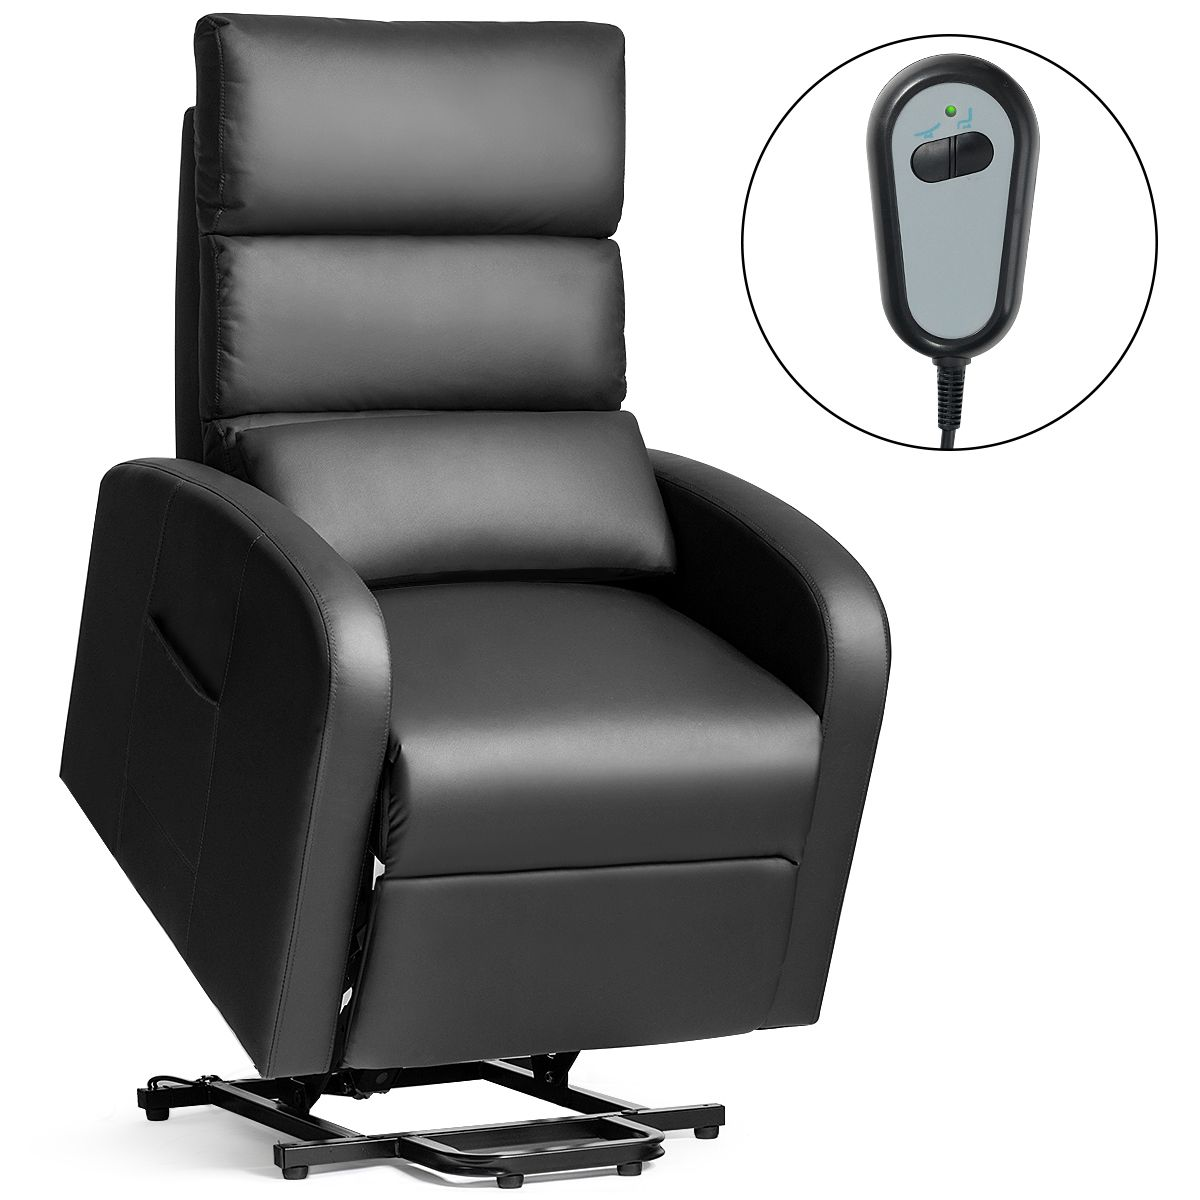 Costway electric power lift massage sofa leather recliner